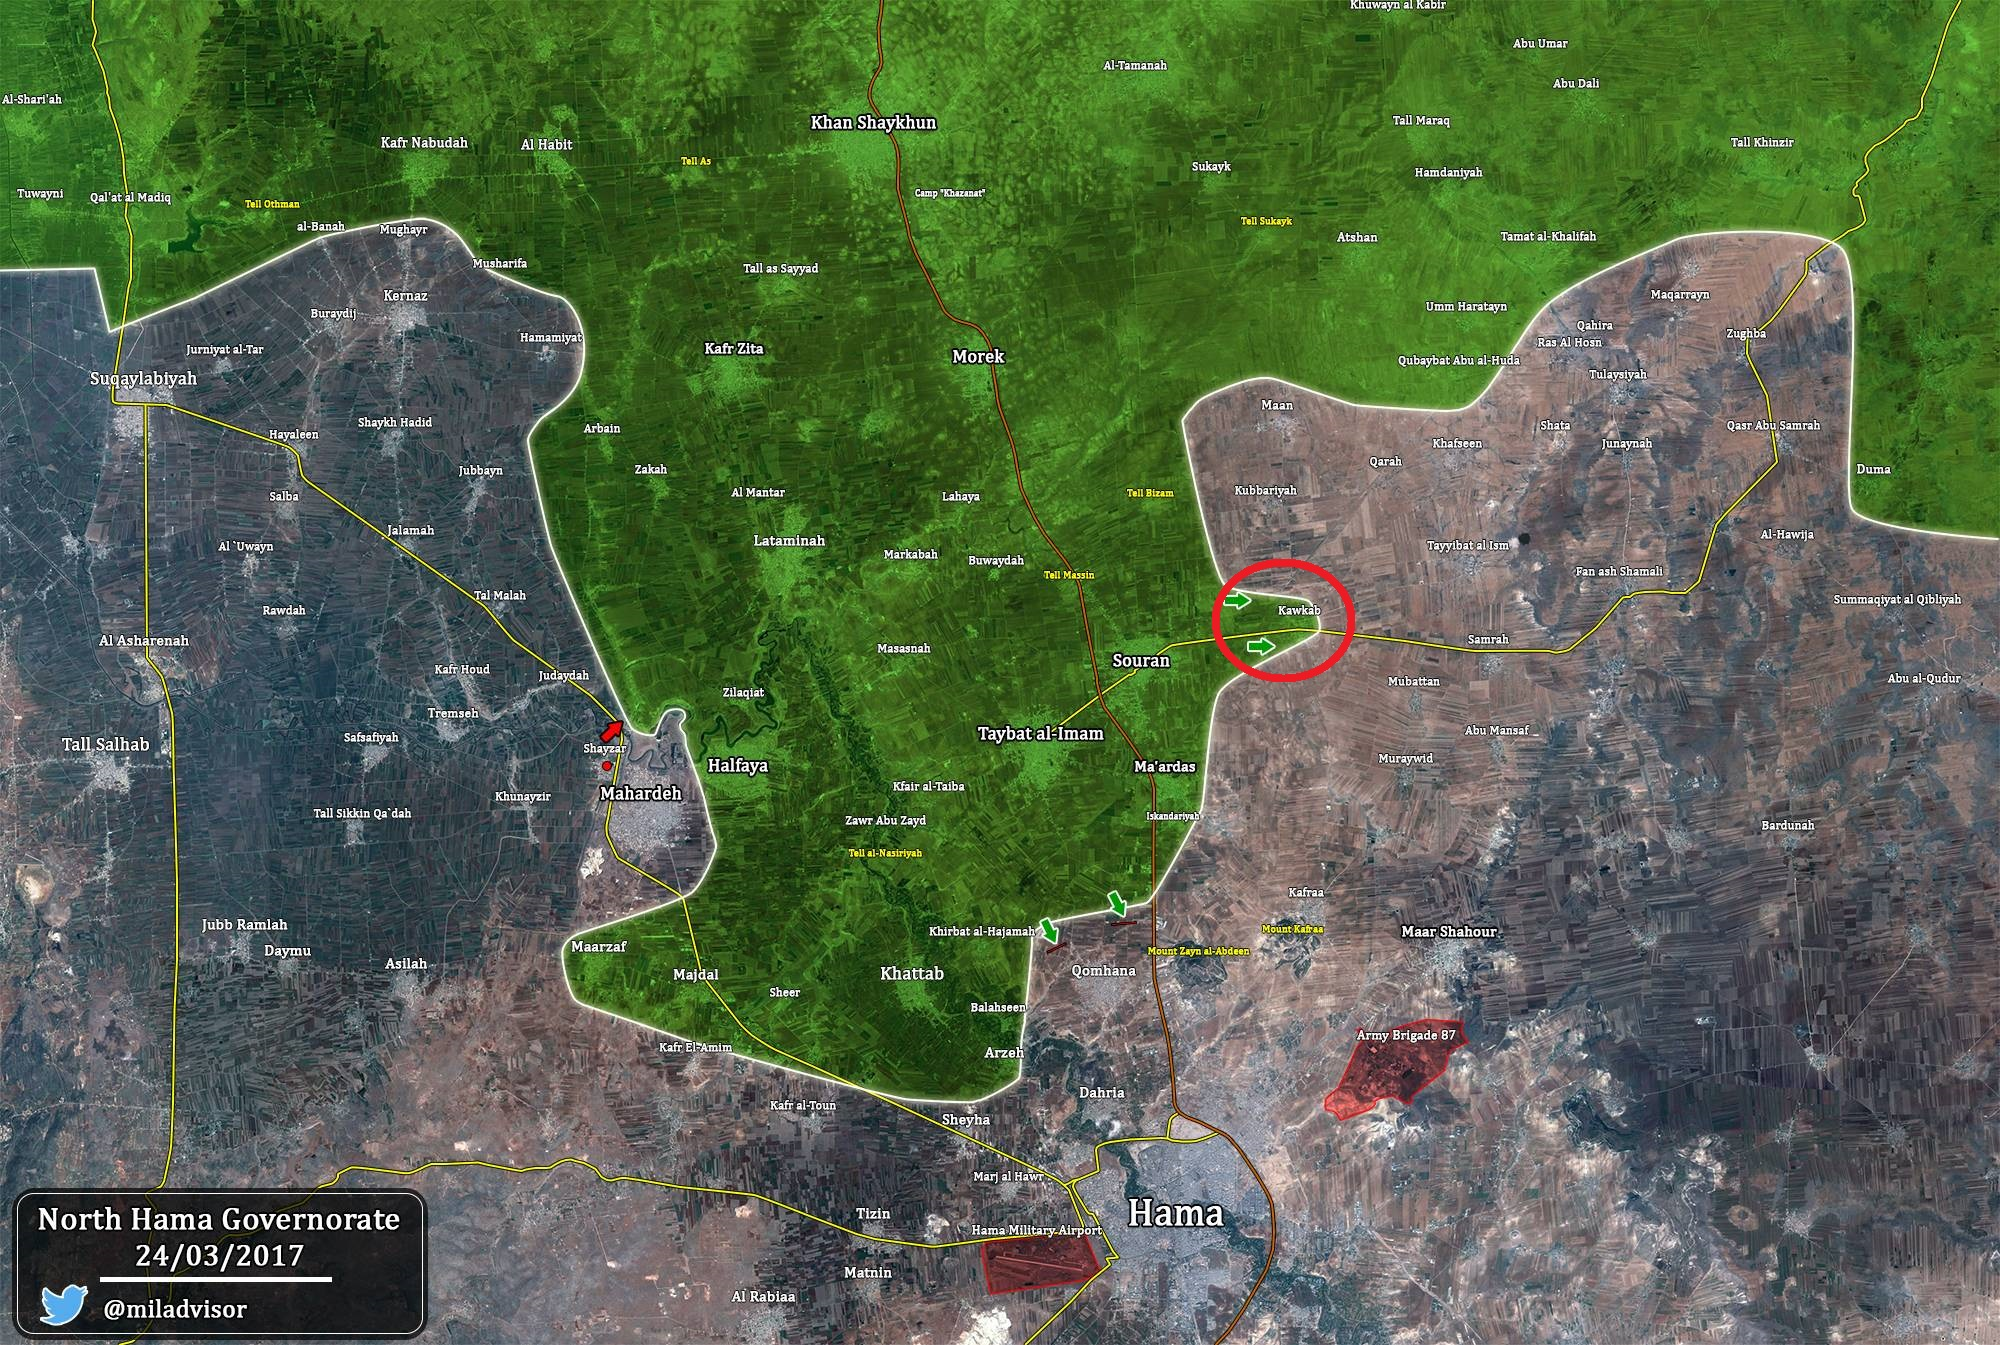 Syrian Army Regained Kawkab Town From Militants In Northern Hama - Reports